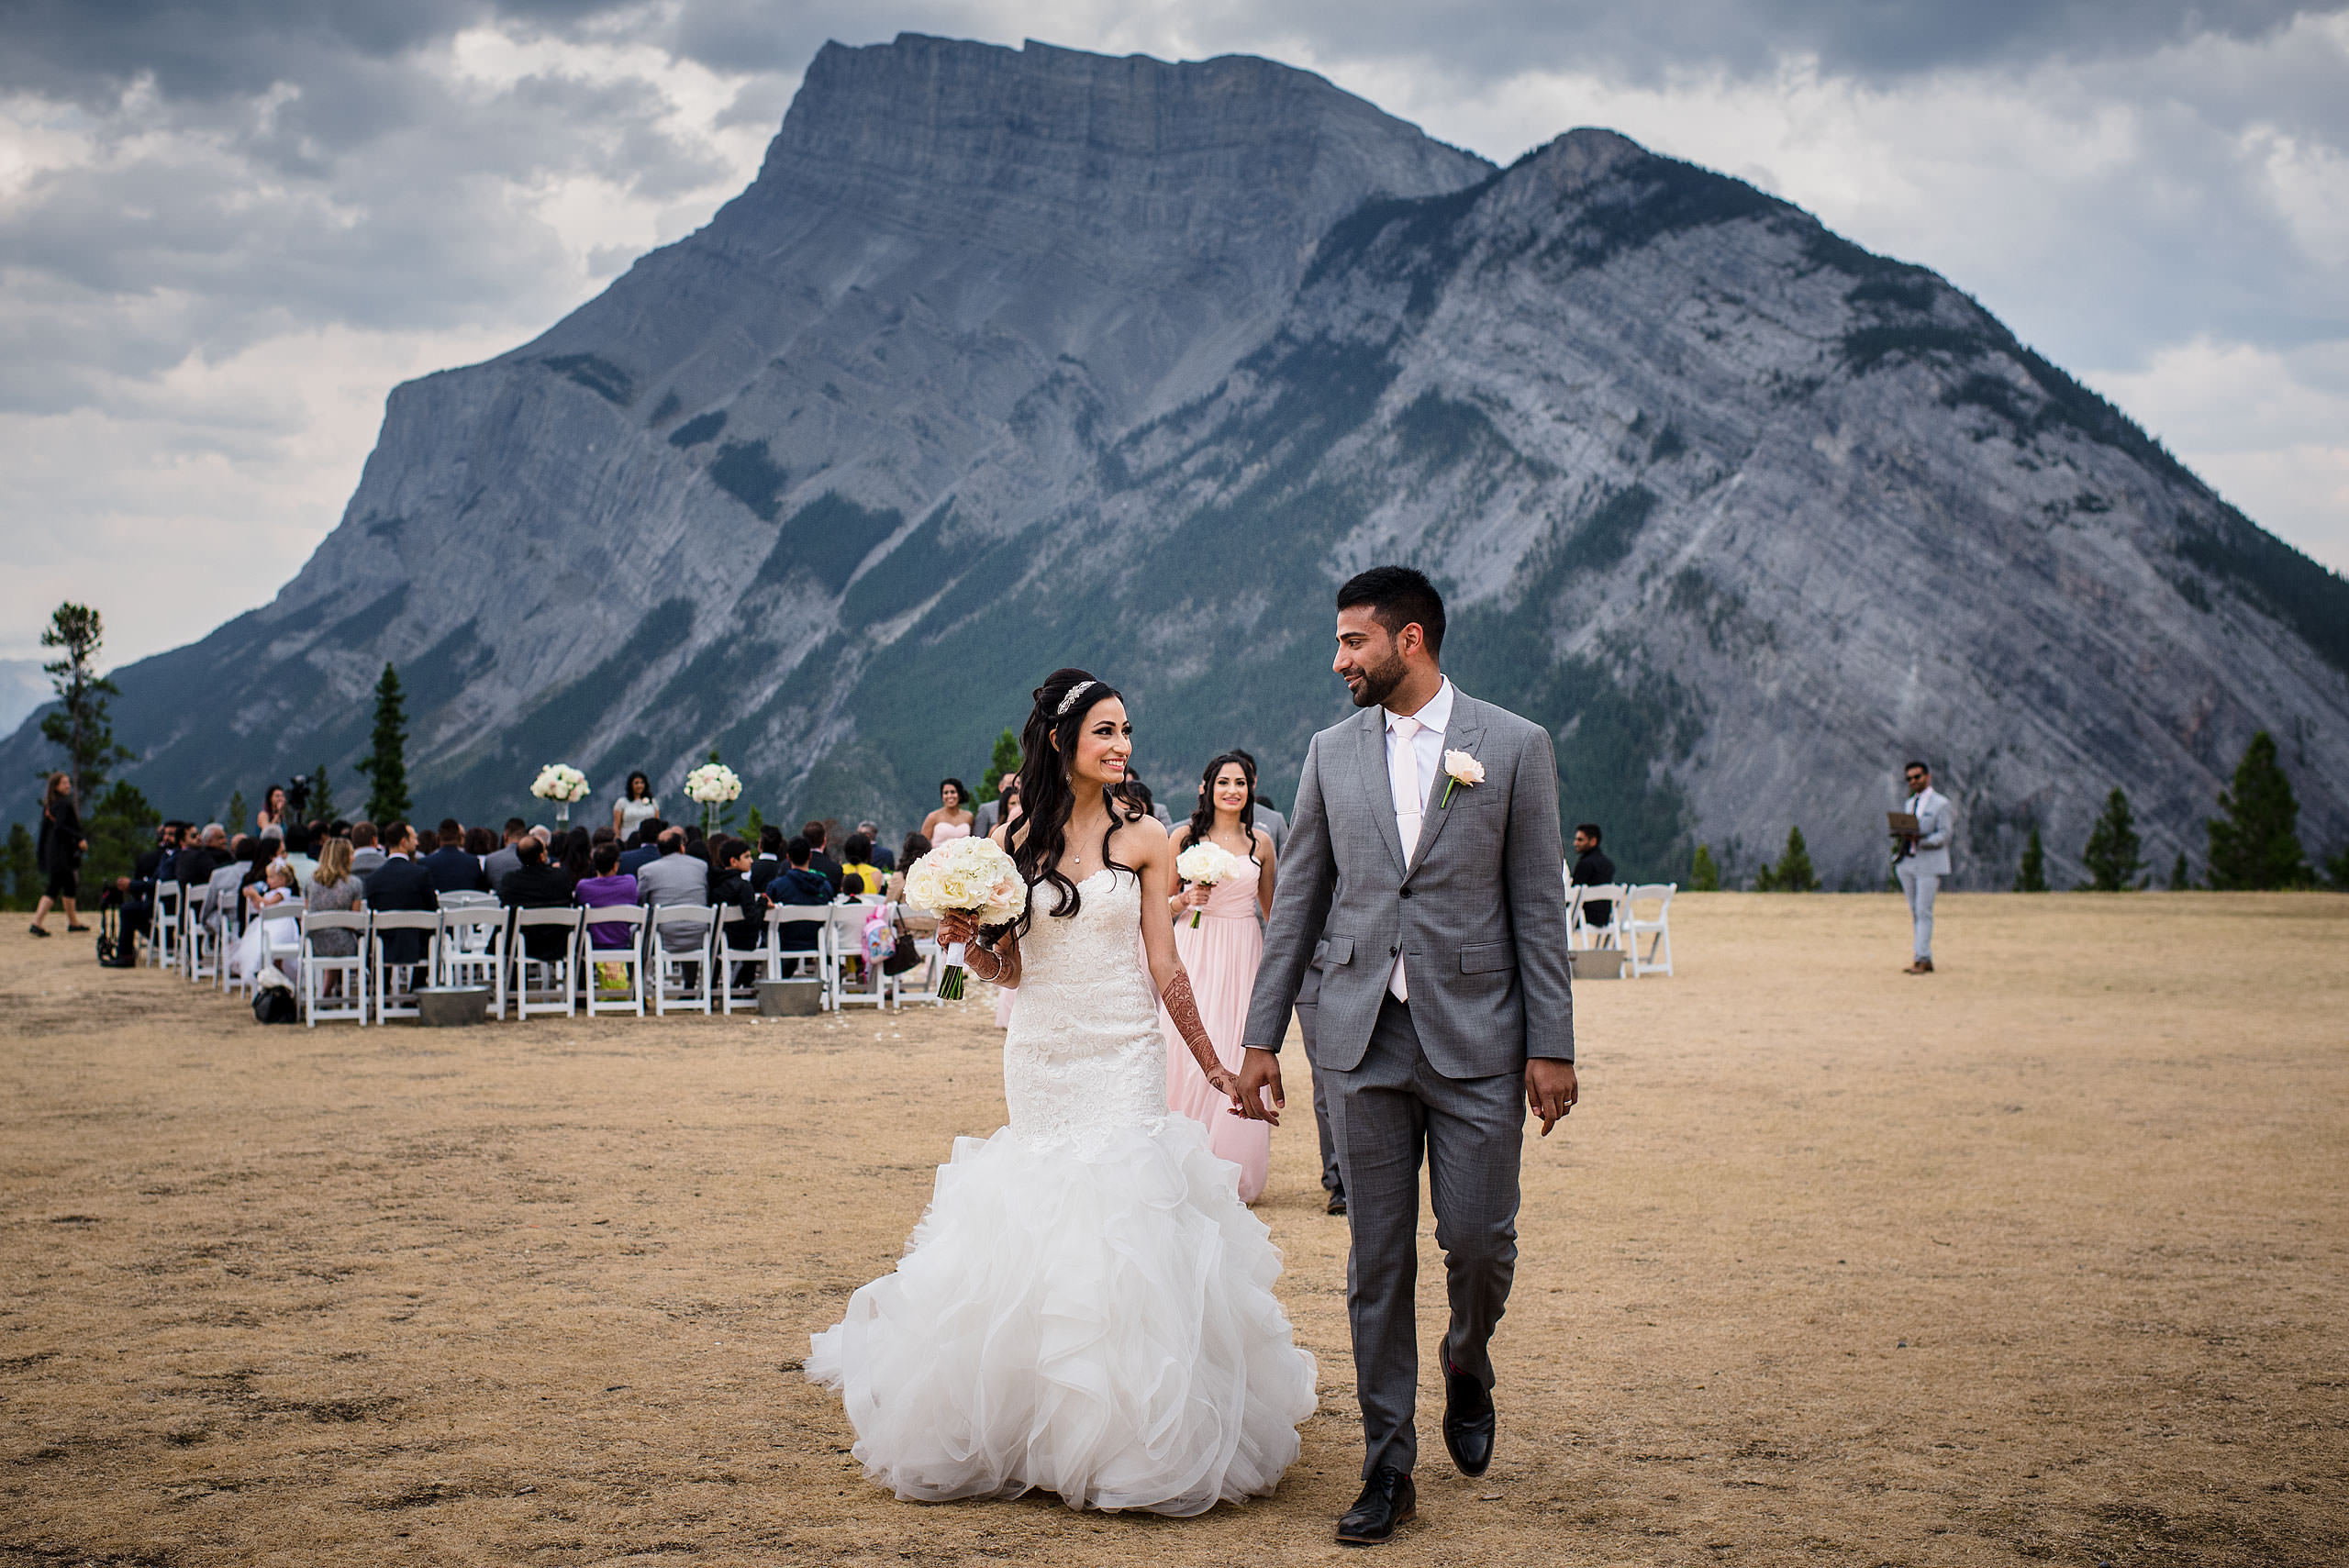 a bride and groom walking from their wedding ceremony by Calgary Banff Wedding Photographer Sean LeBlanc